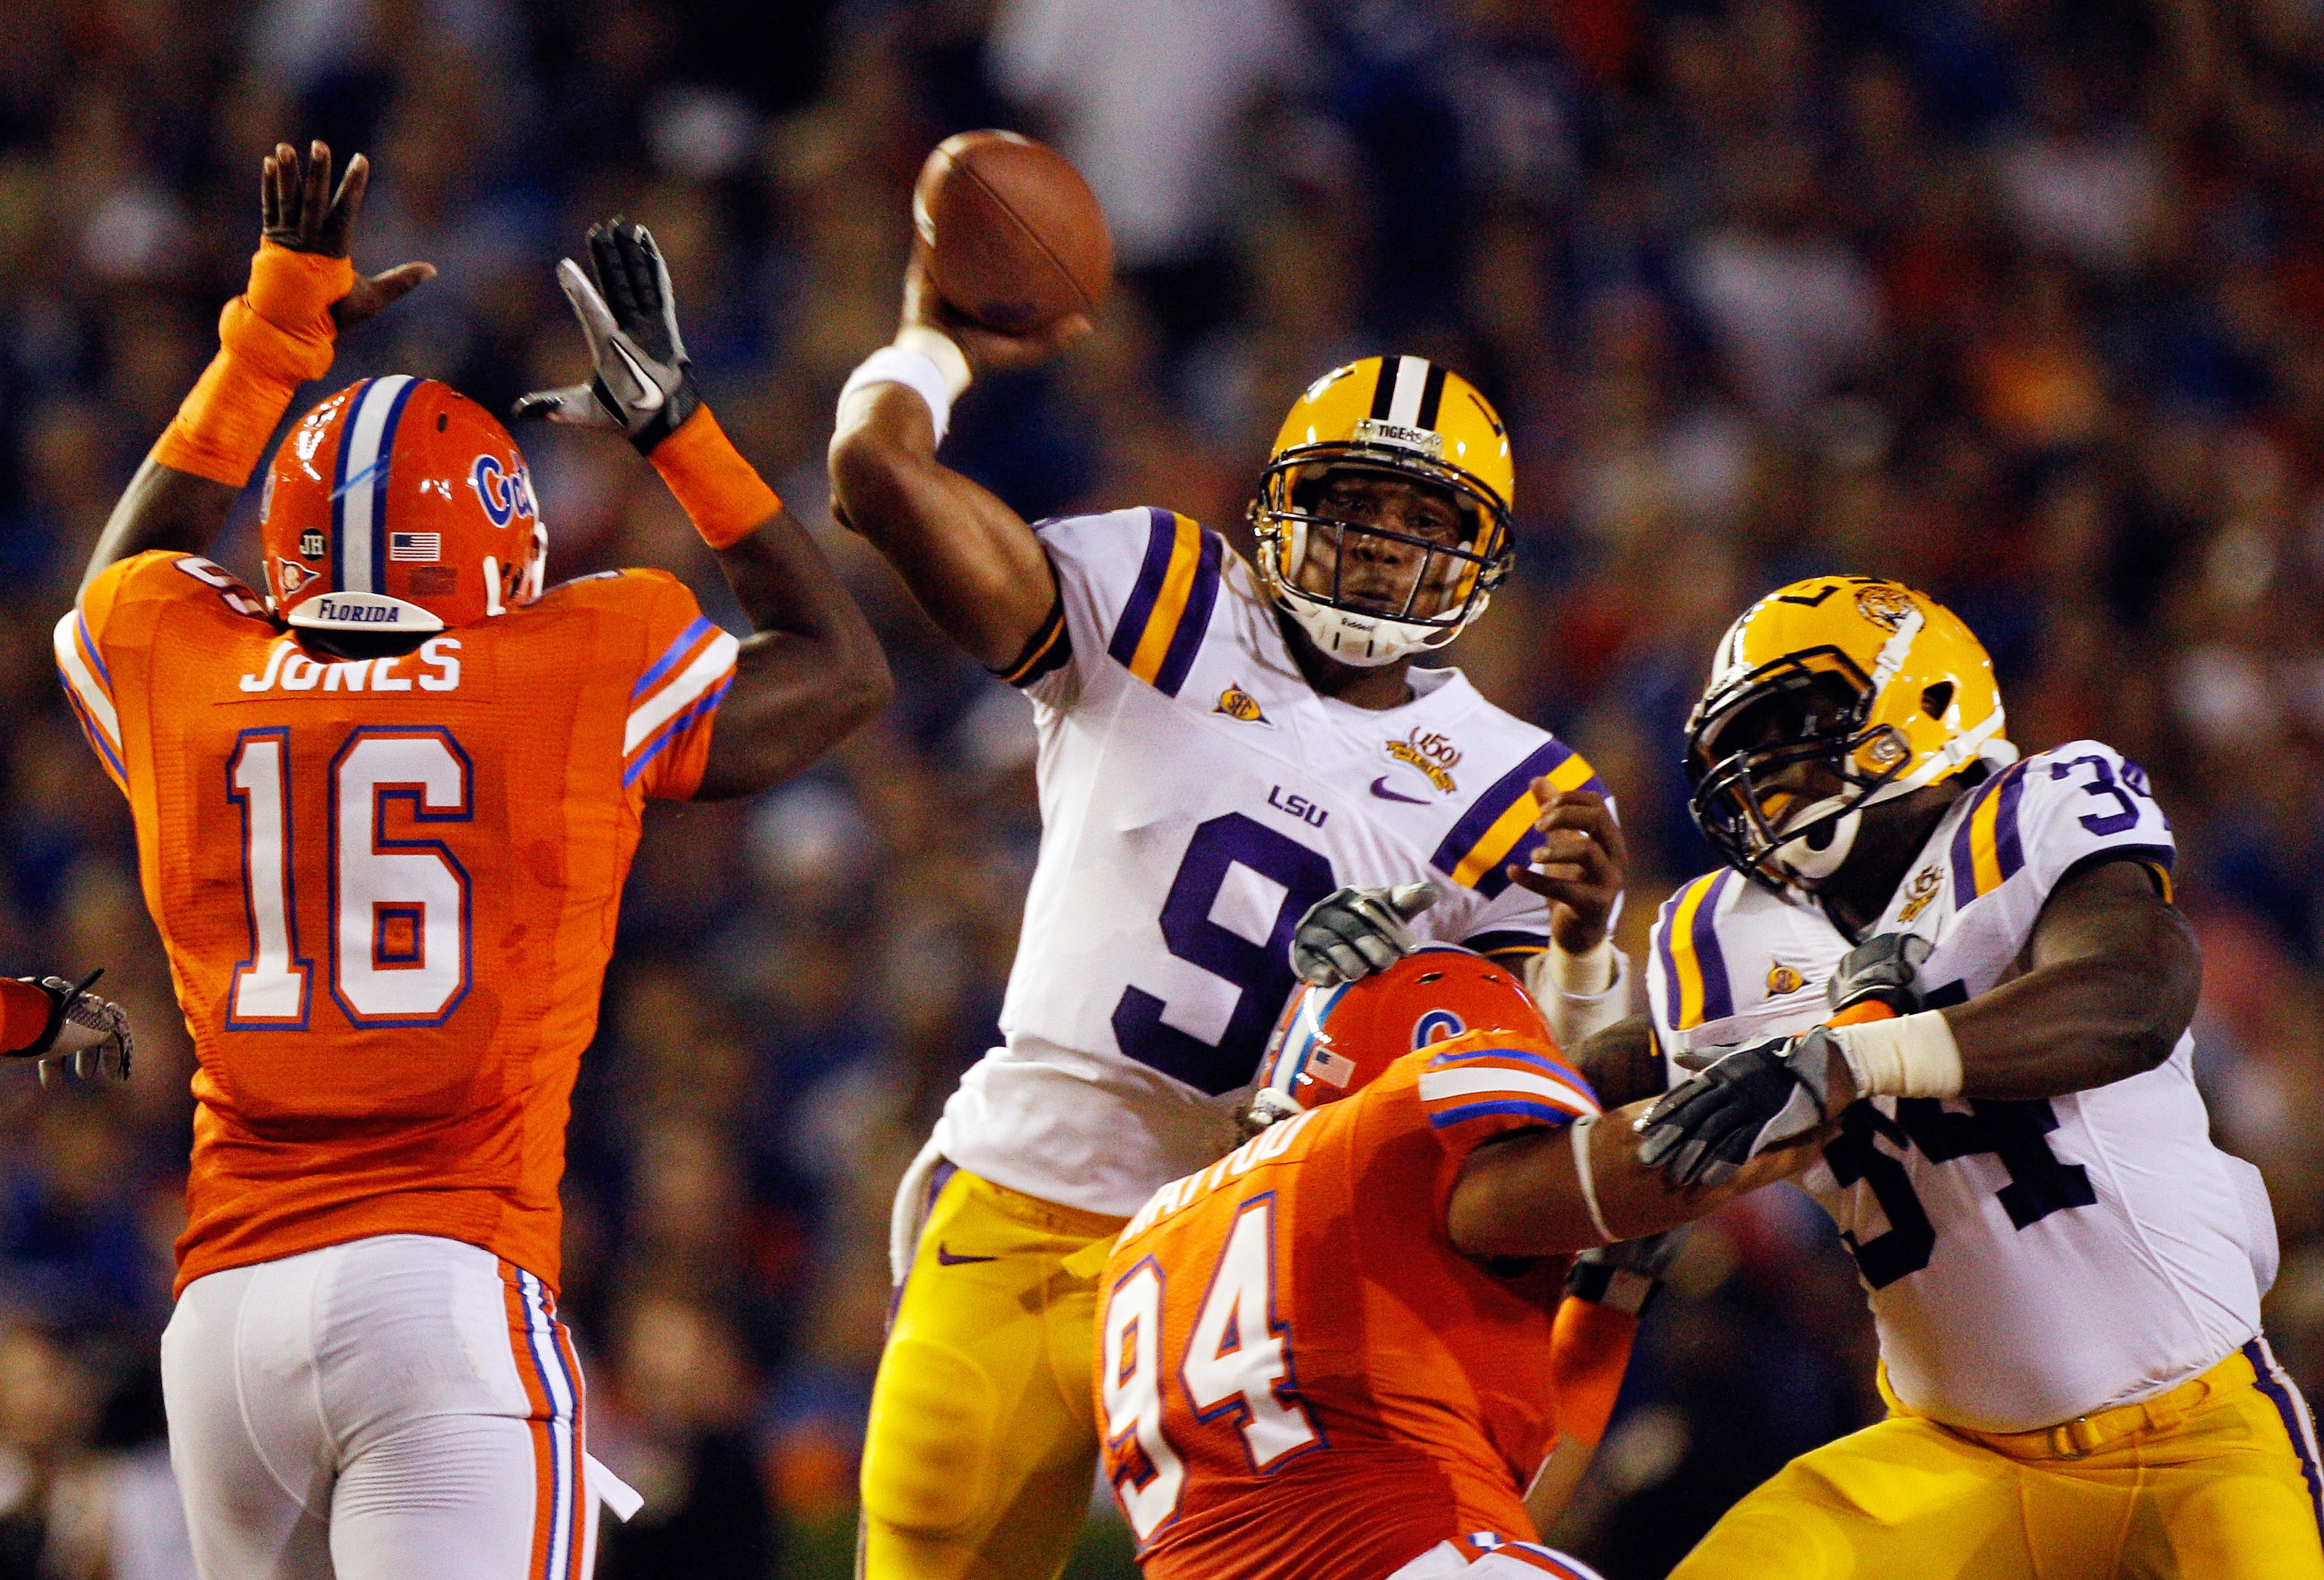 GAINESVILLE, FL - OCTOBER 09:  Quarterback Jordan Jefferson #9 of the Louisiana State University Tigers attempts a pass over A.J. Jones #16 of the Florida Gators during the game at Ben Hill Griffin Stadium on October 9, 2010 in Gainesville, Florida.  (Pho